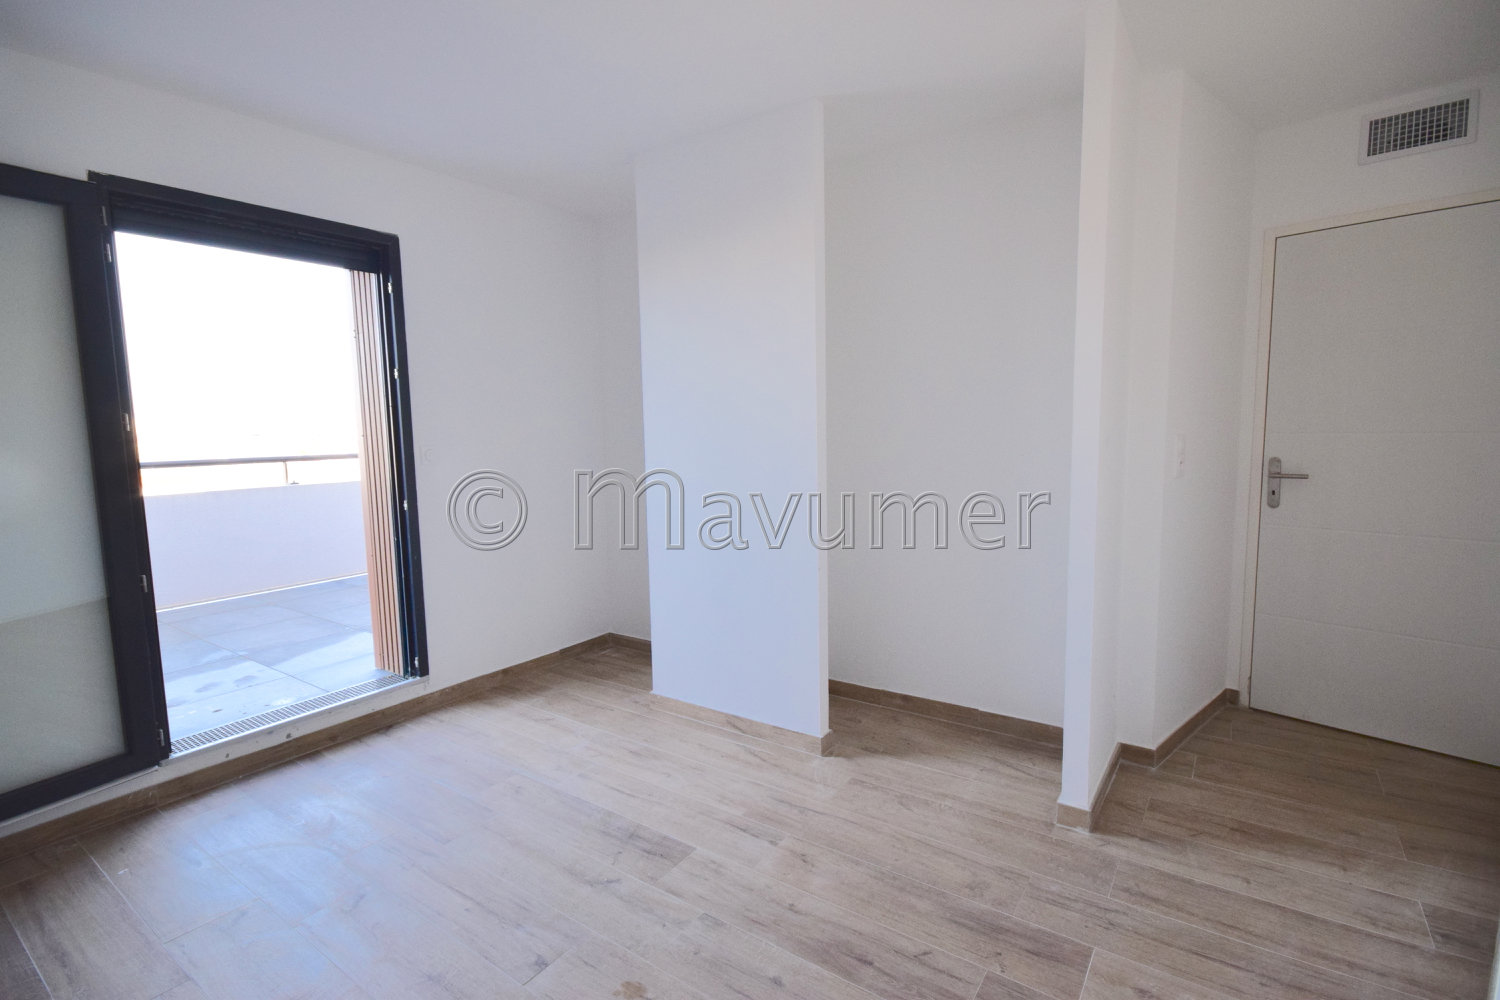 Sale Apartment - Marseille 7ème Bompard